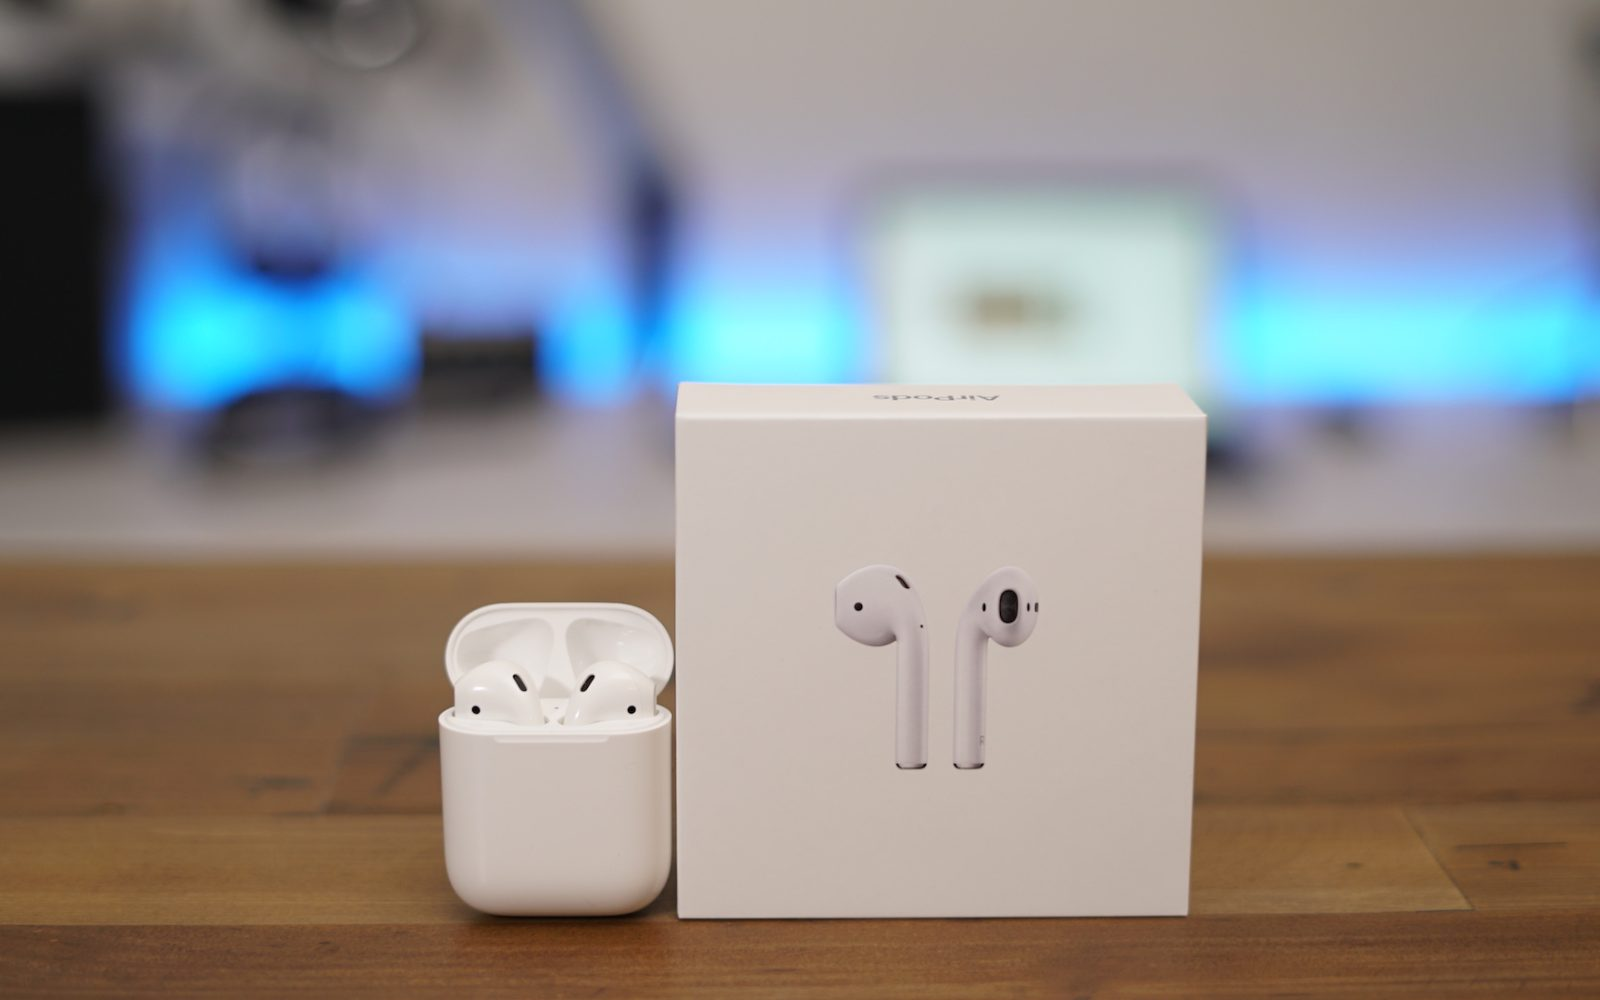 AirPods: Top Features - Was it worth the wait? [Video ...